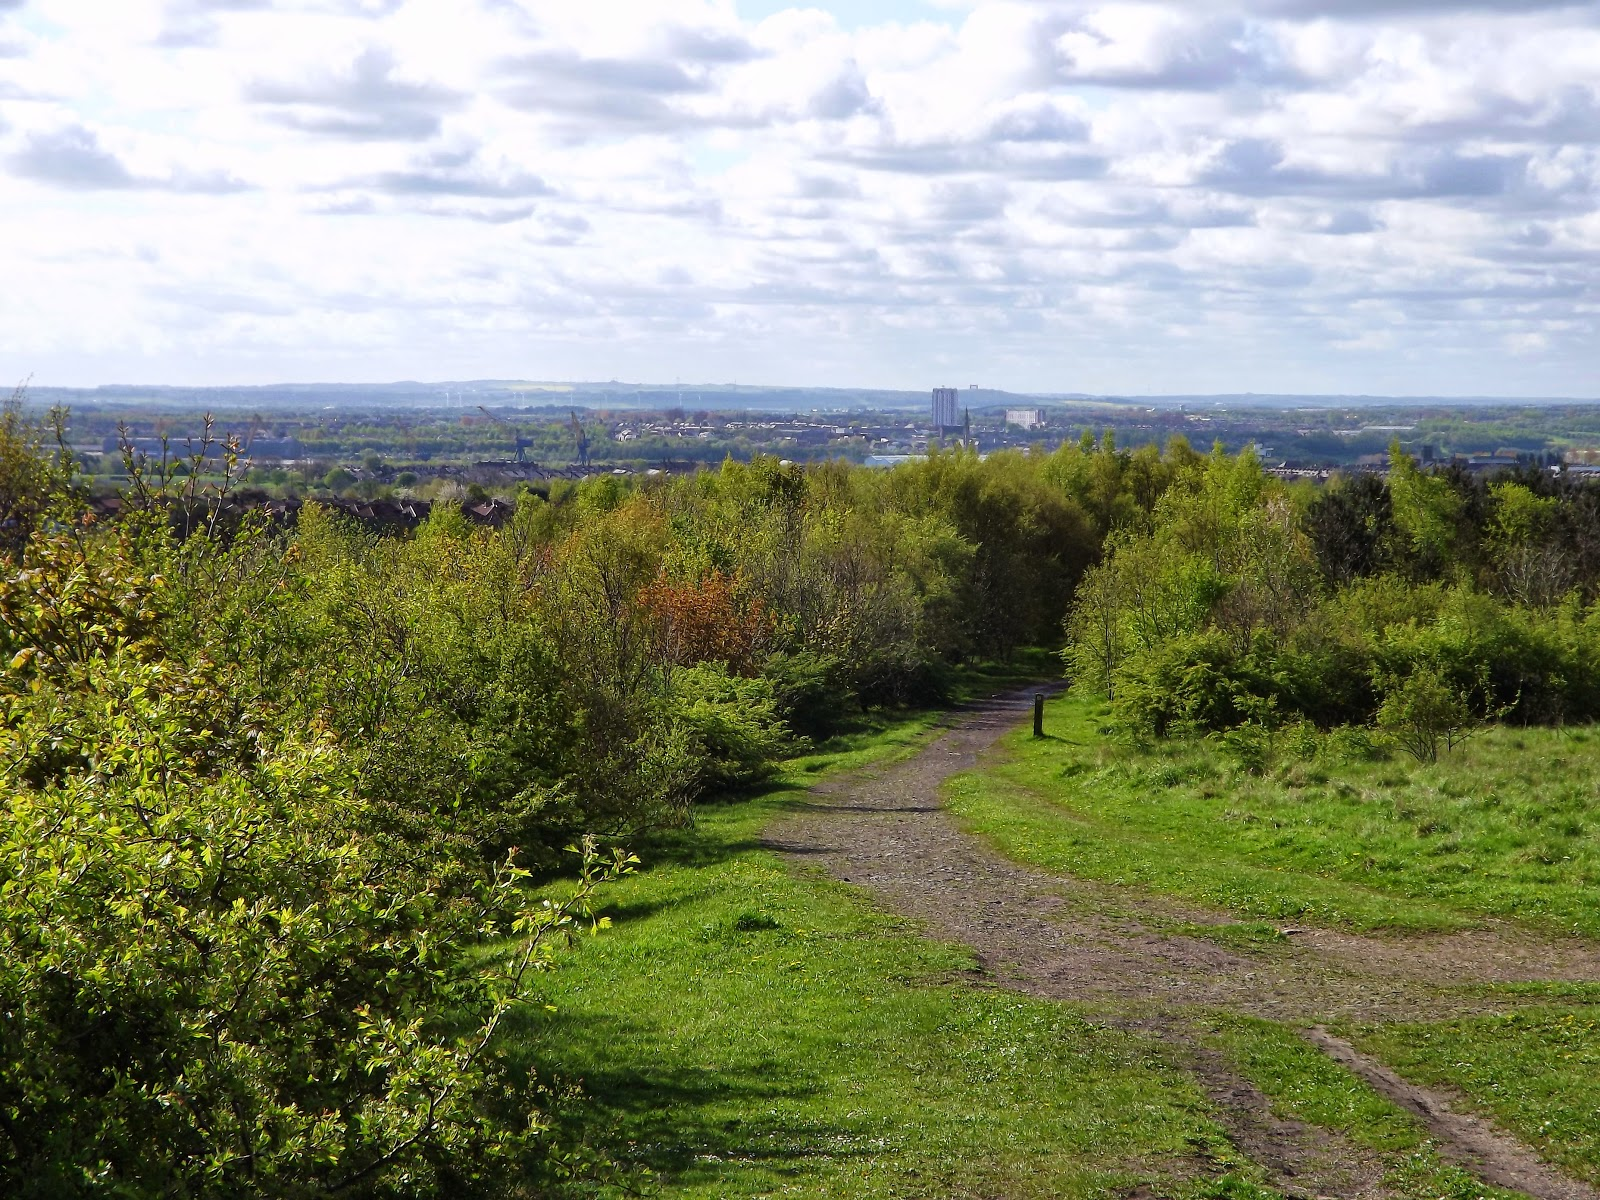 Northumbrian Images: Rising Sun Country Park North Tyneside